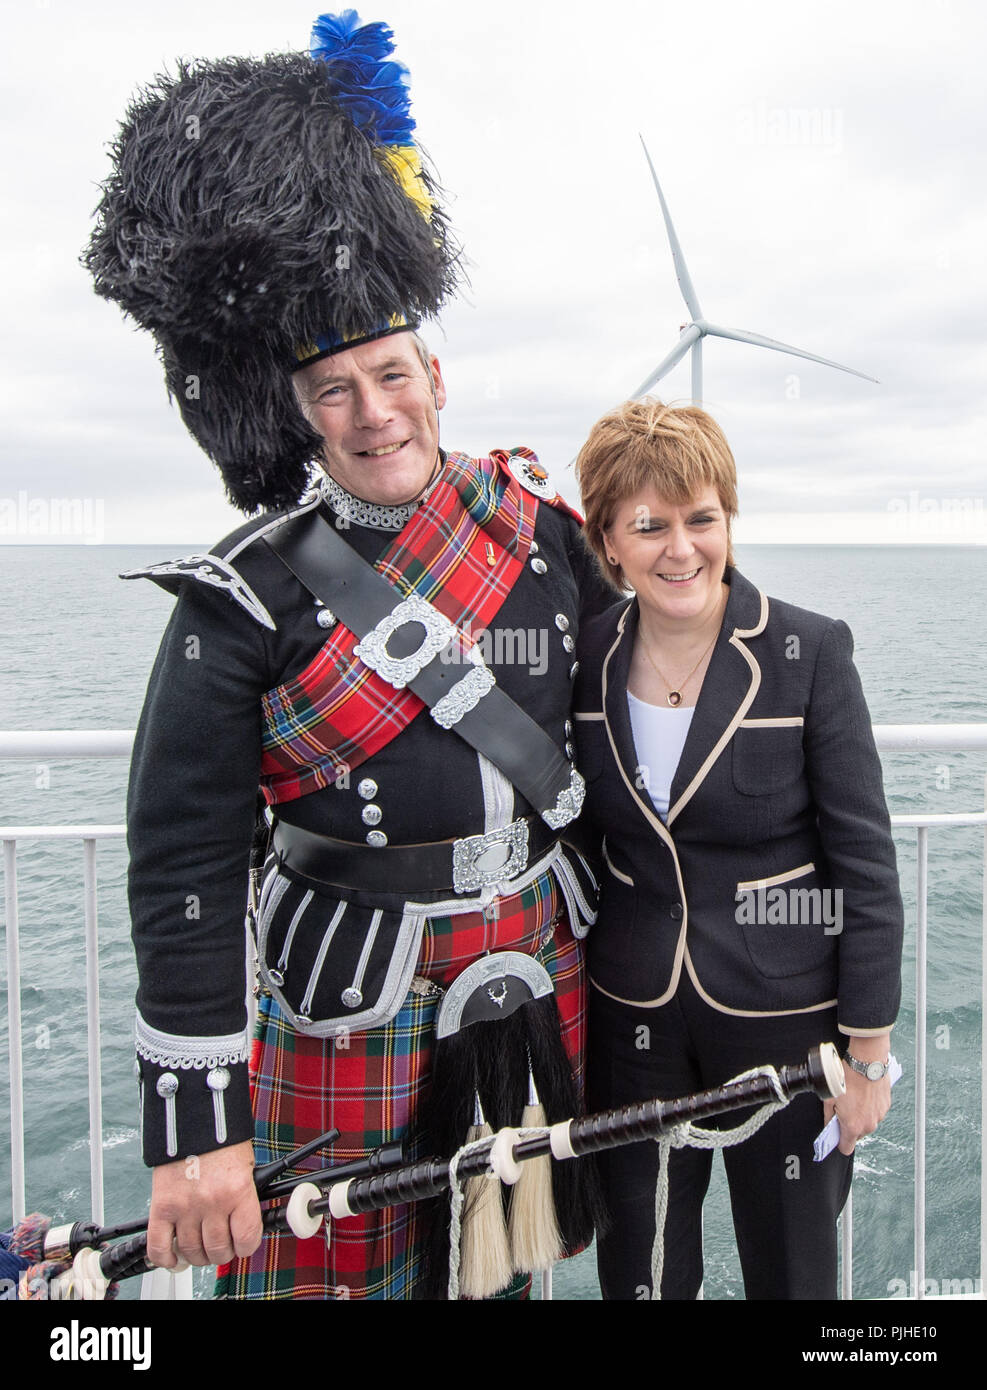 First Minister Nicola Sturgeon and with piper Norman Fiddes at the opening of Vattenfall's European Offshore Wind Deployment Centre (EOWDC) off the coast of Aberdeen. - Stock Image